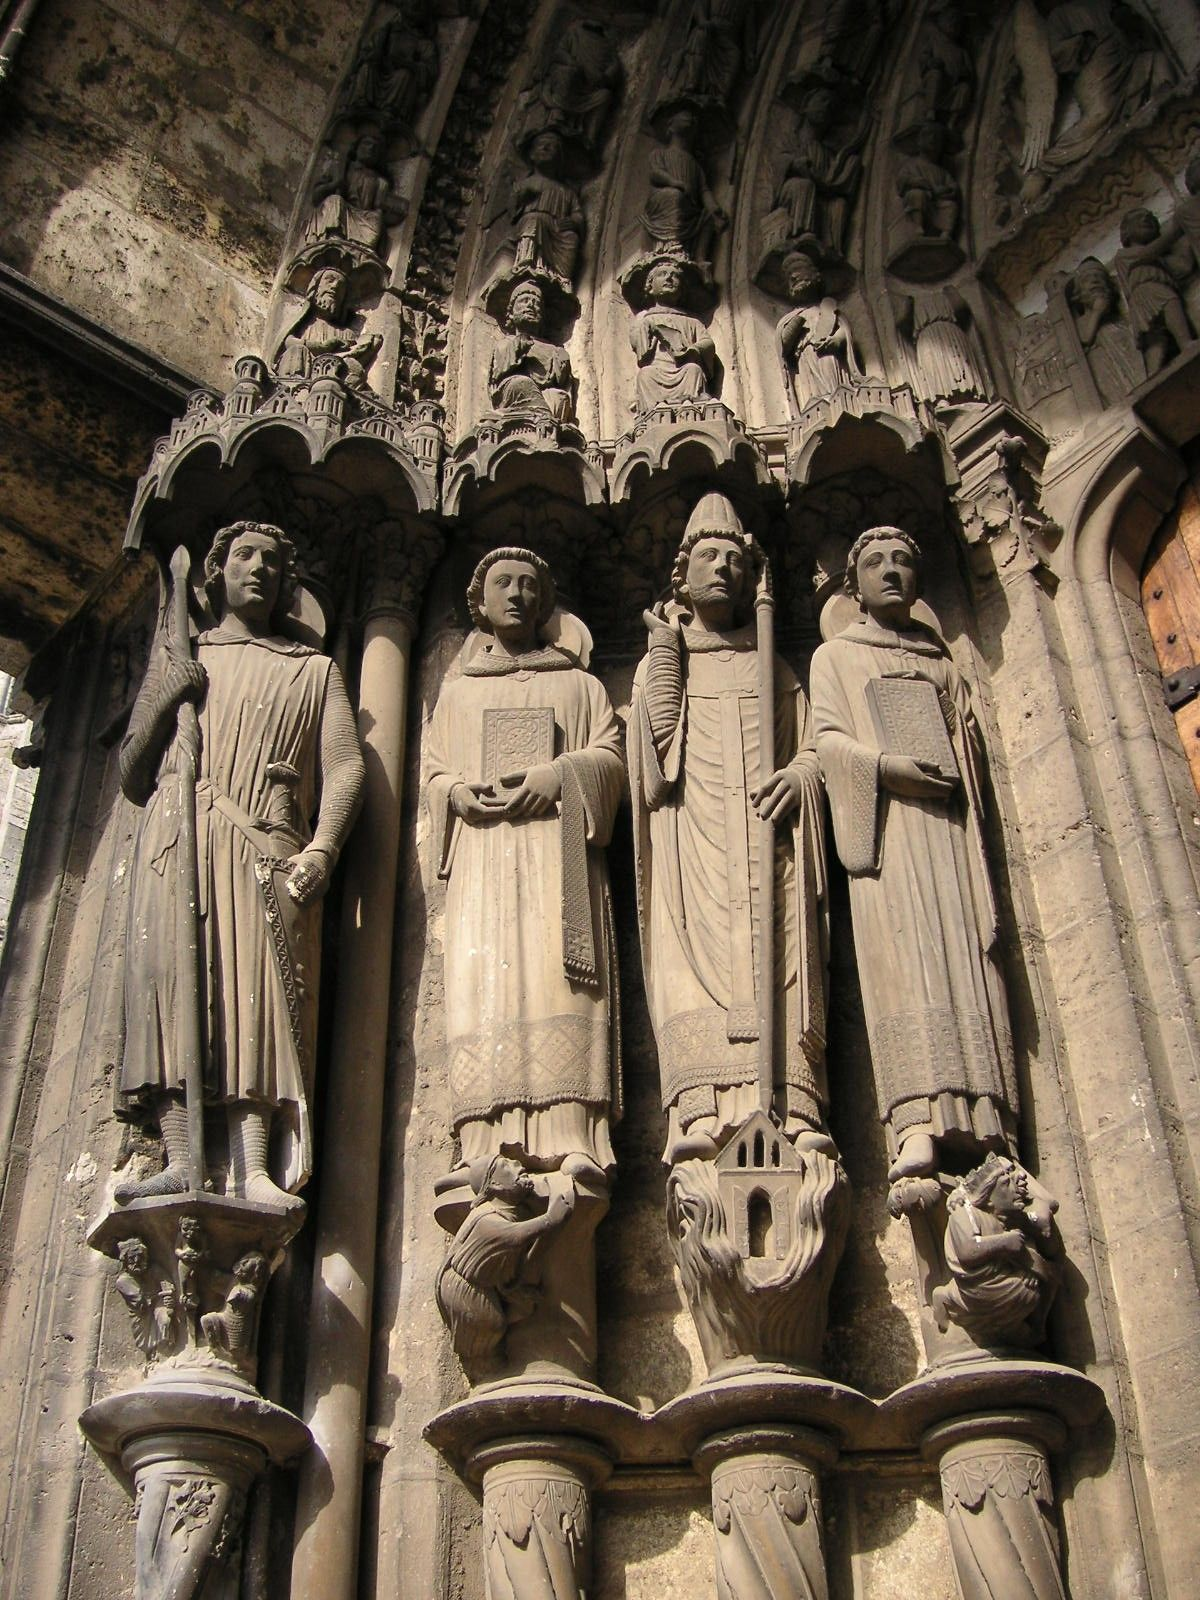 Gothic Art And Architecture   P.  Http://upload.wikimedia.org/wikipedia/commons/4/42/Chartres_cathedral_023_martyrs_S_TTaylor.JPG